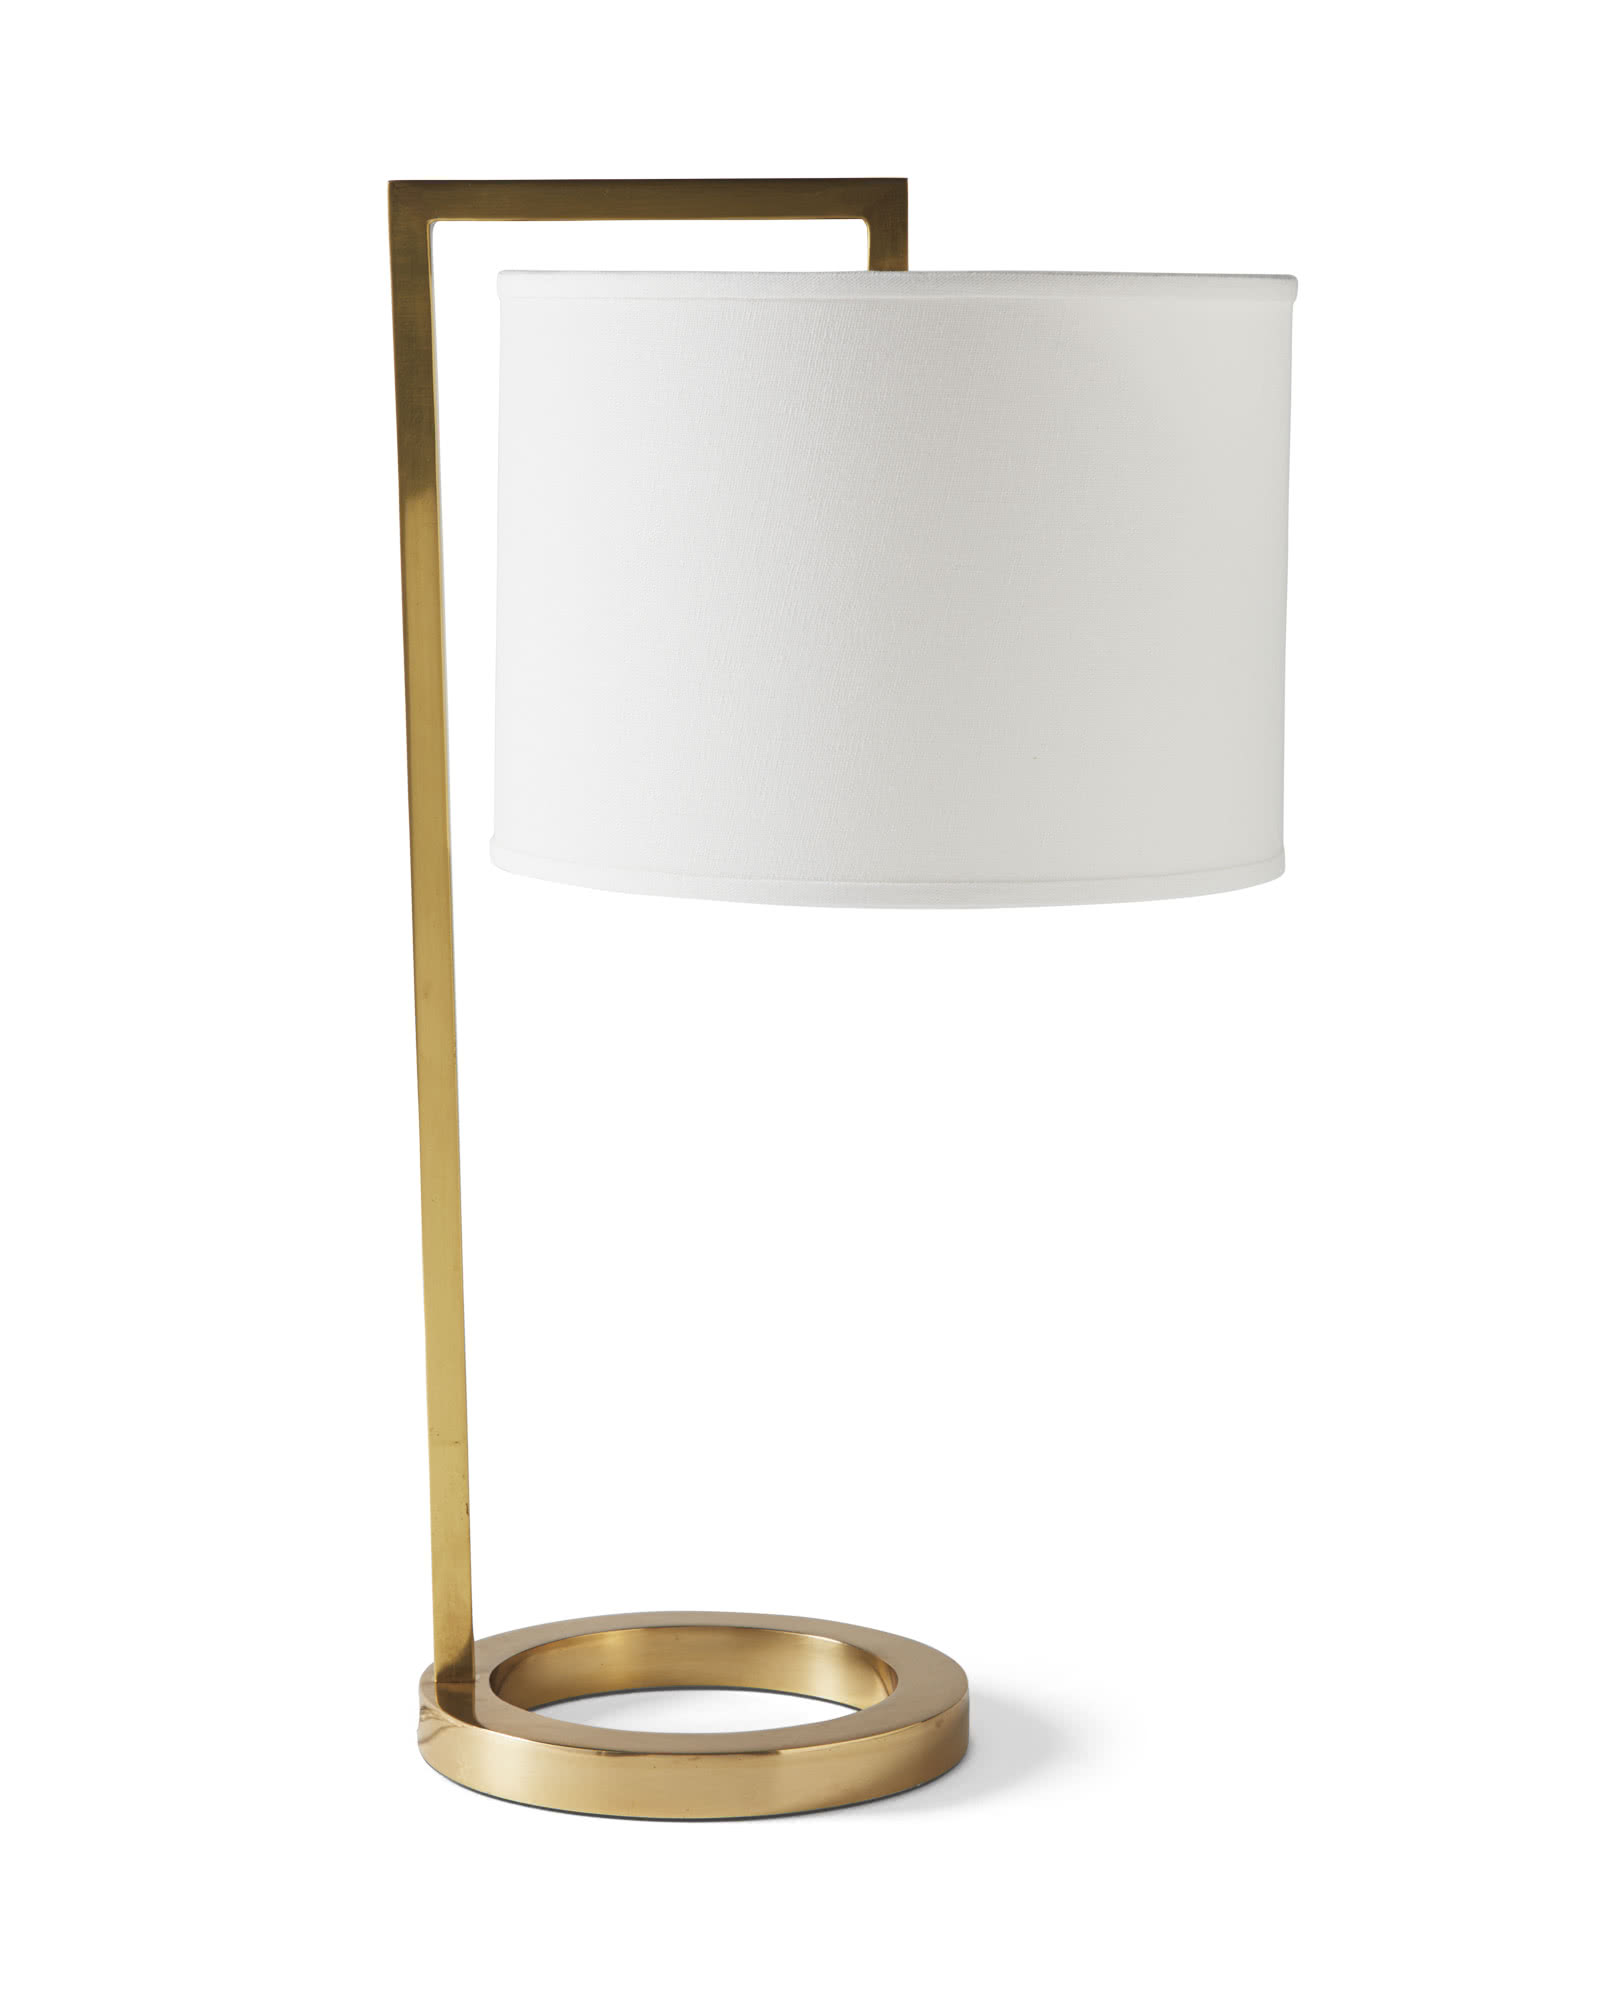 Soho Table Lamp,